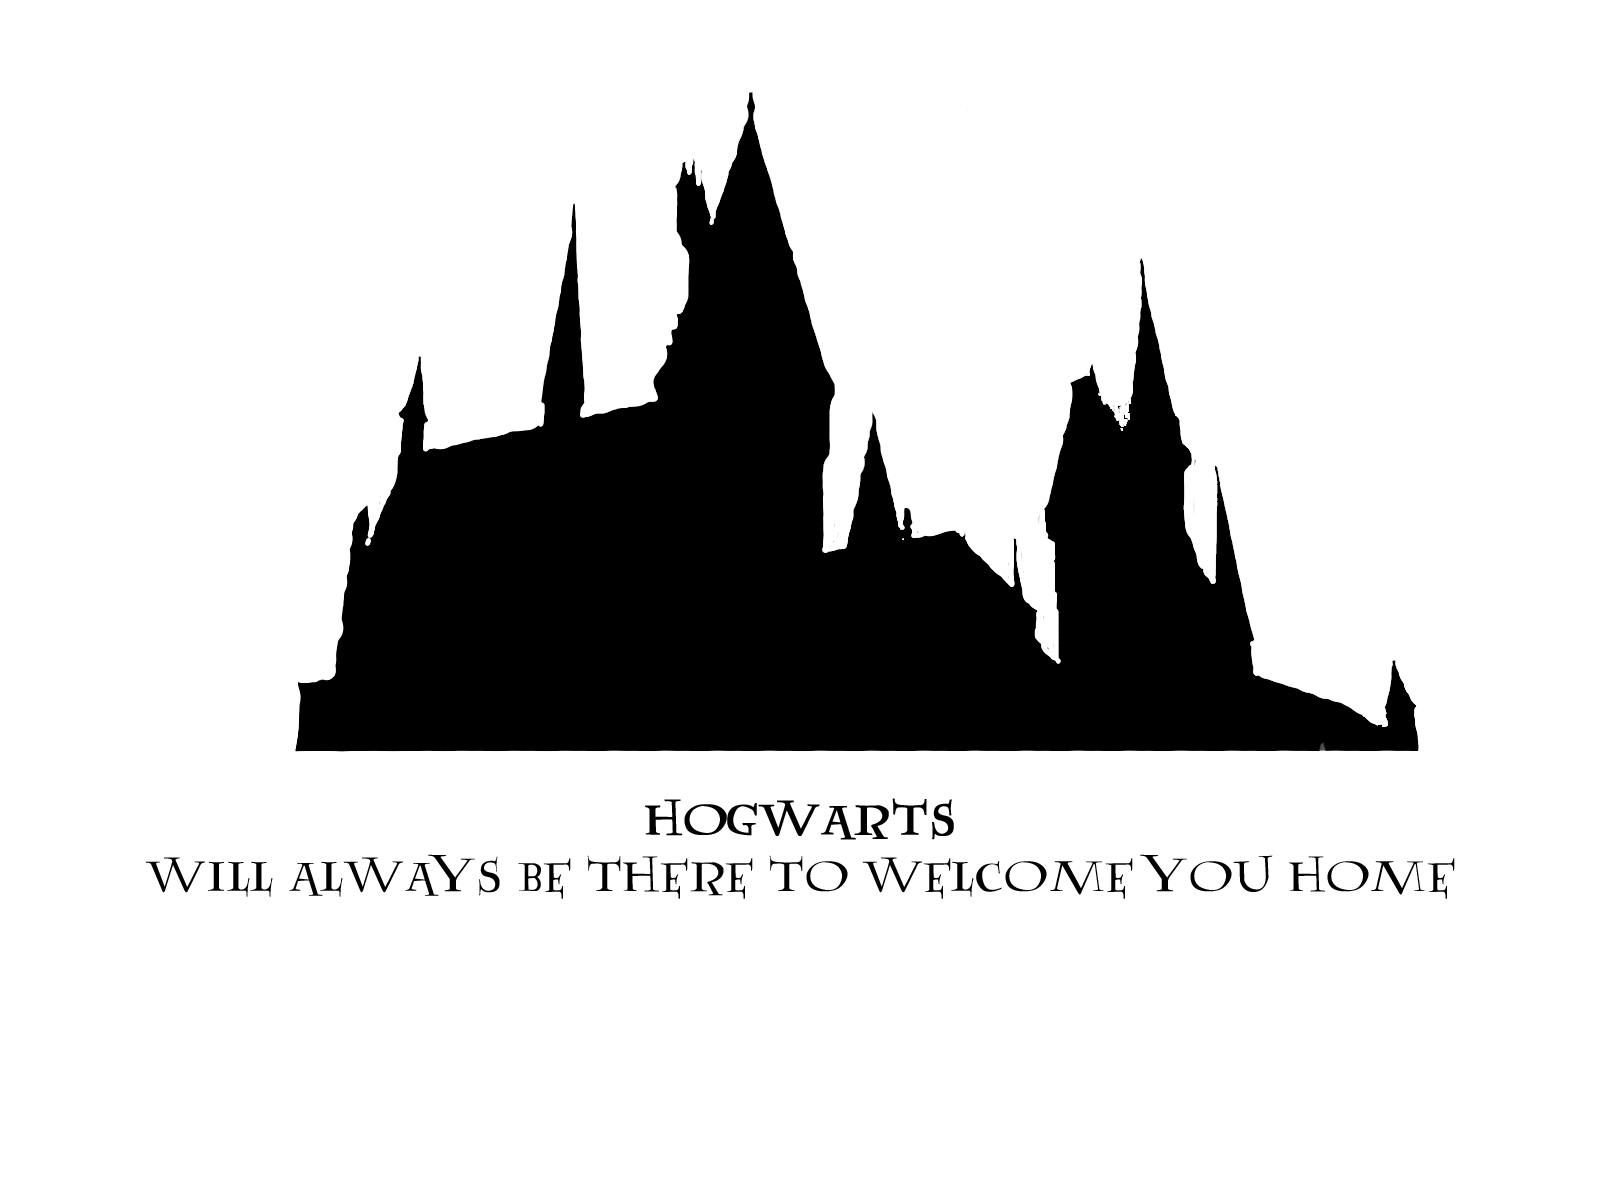 hogwarts_will_alway_be_there_to_welcome_you_home_by_greendude33-d4h7w0y.png (1600×1195)